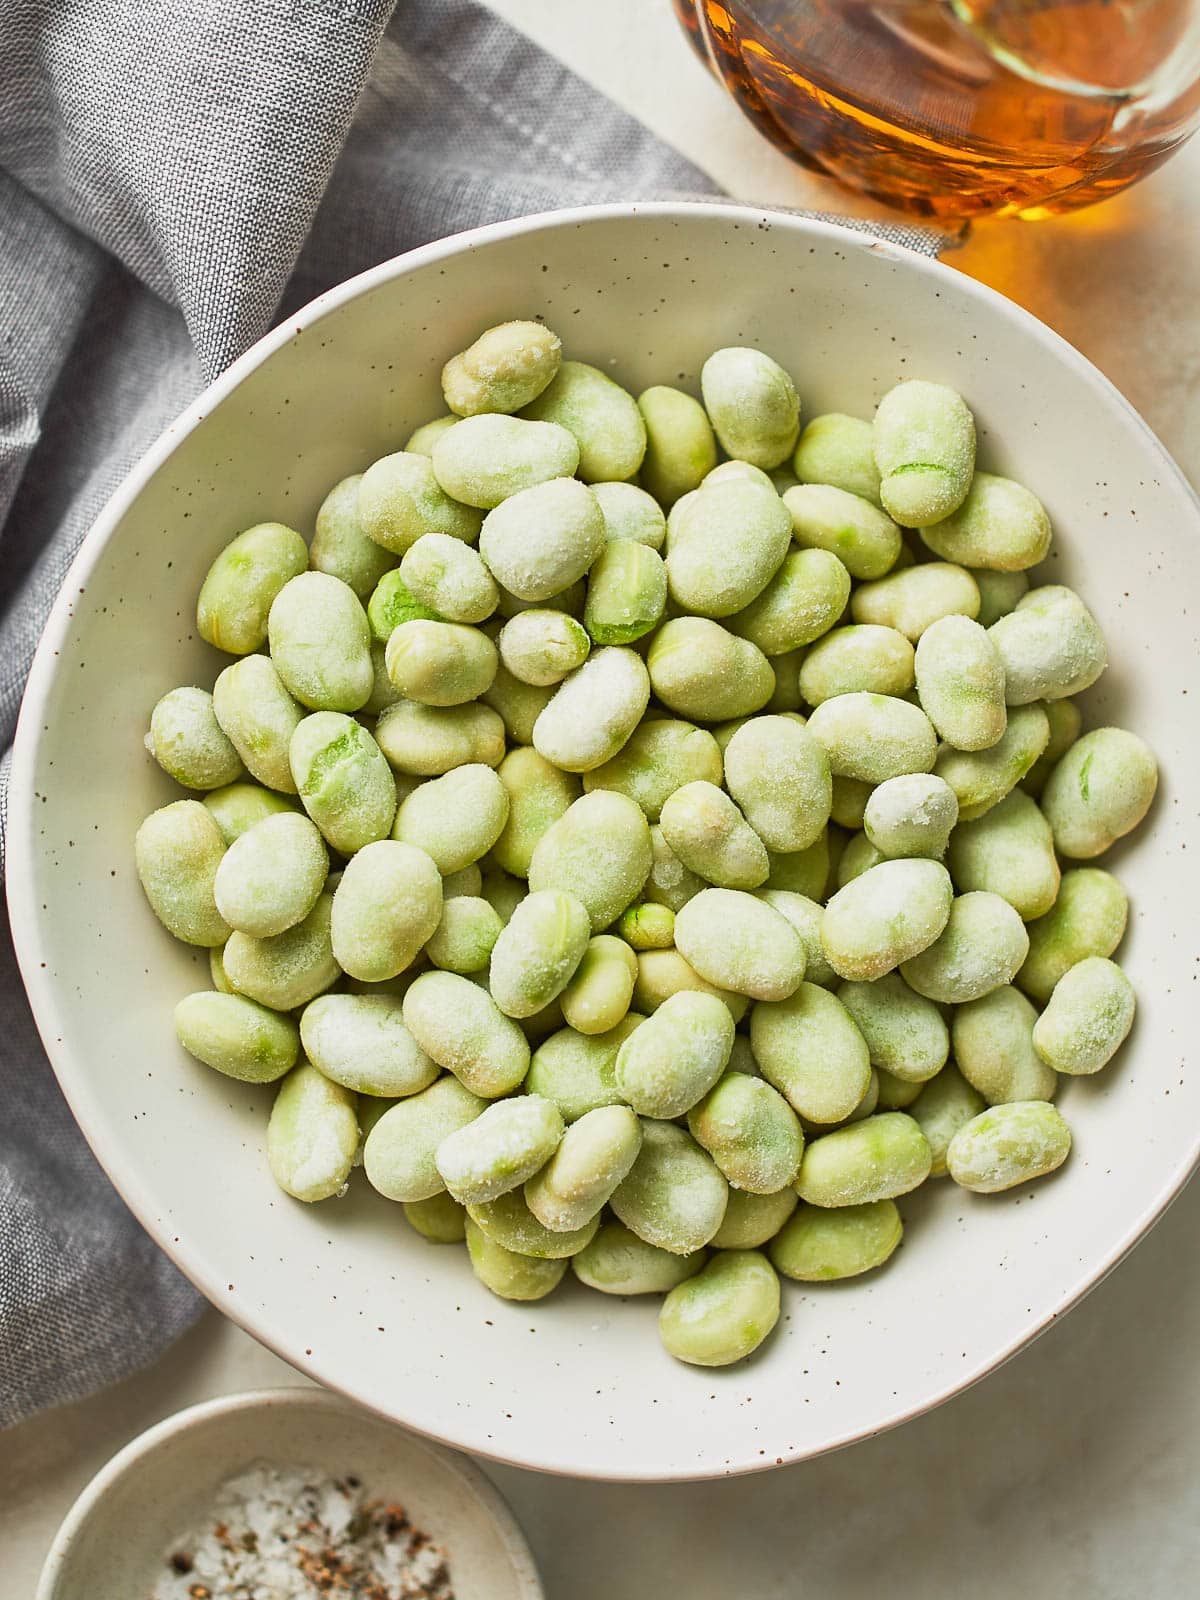 Ingredients for roasted fava beans